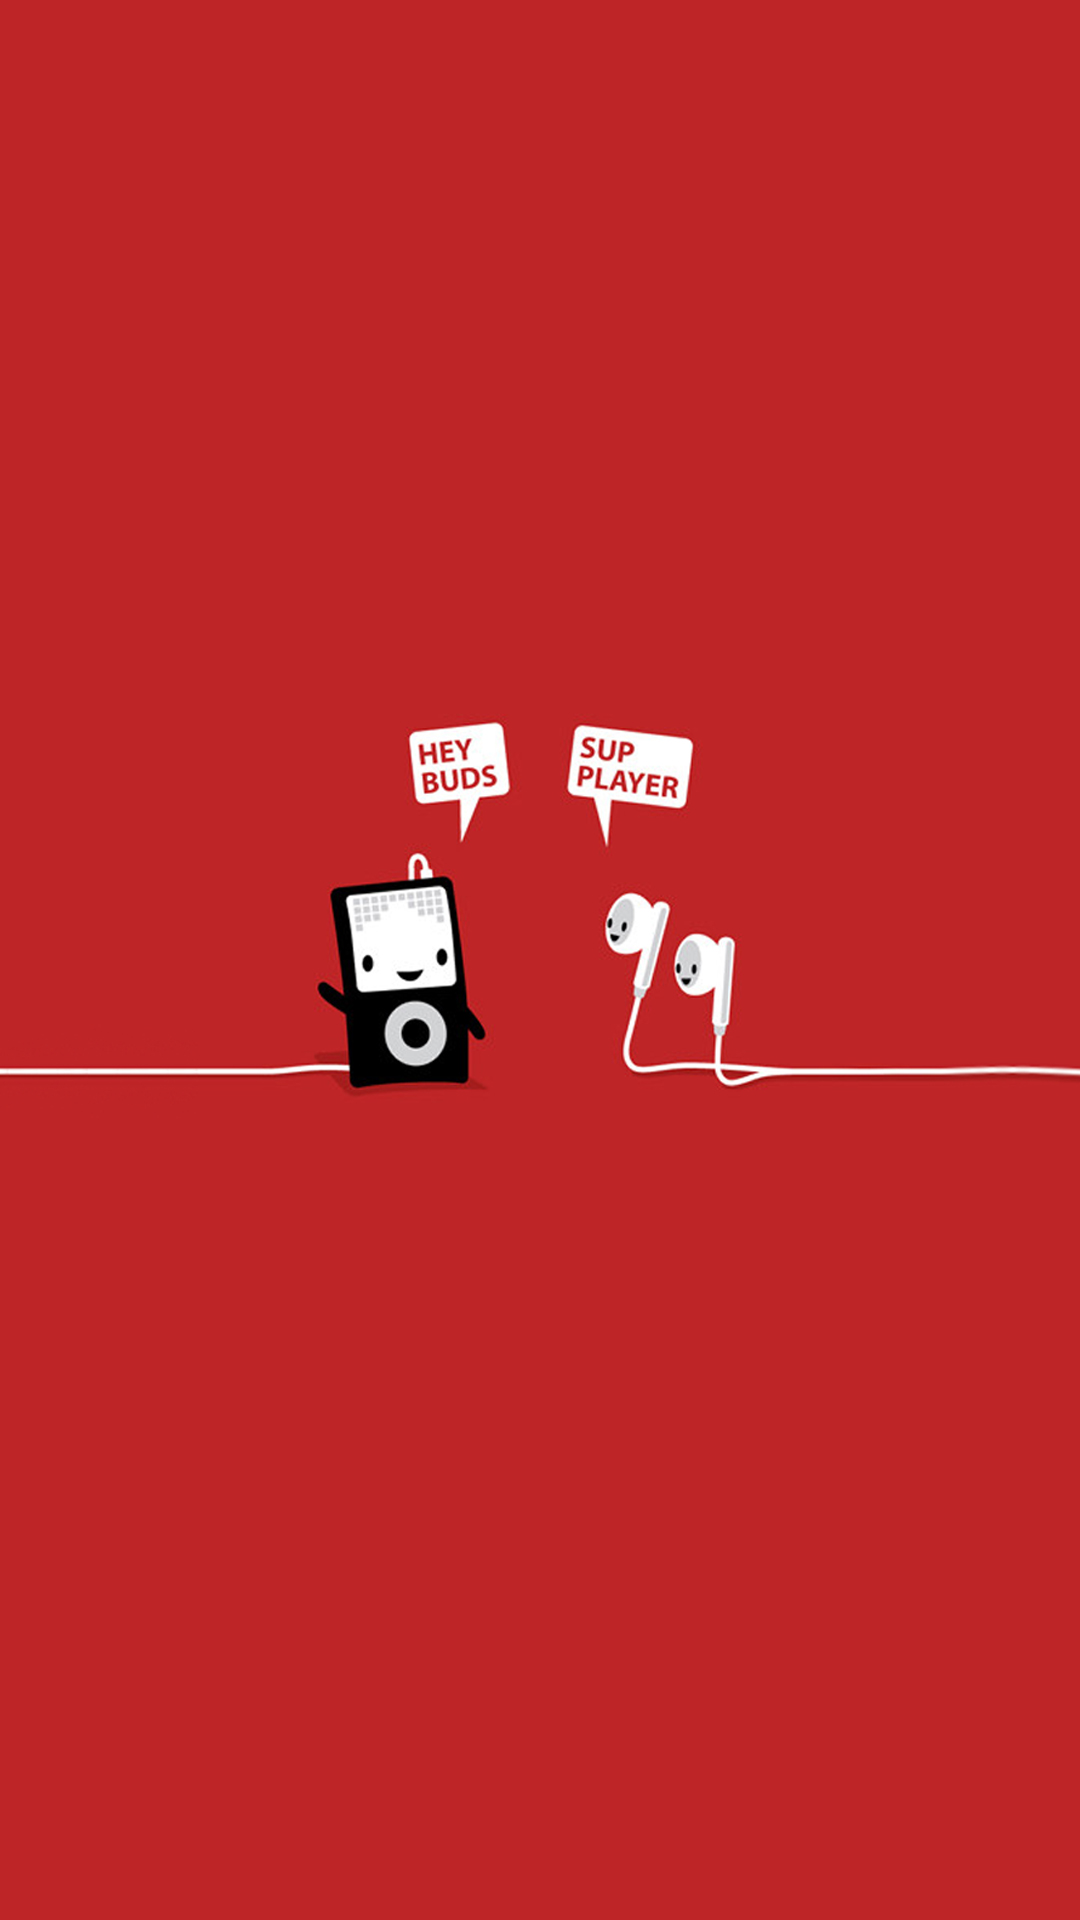 Funny-Music-Player-Earphones-Buds-Android-wallpaper-wp5405159